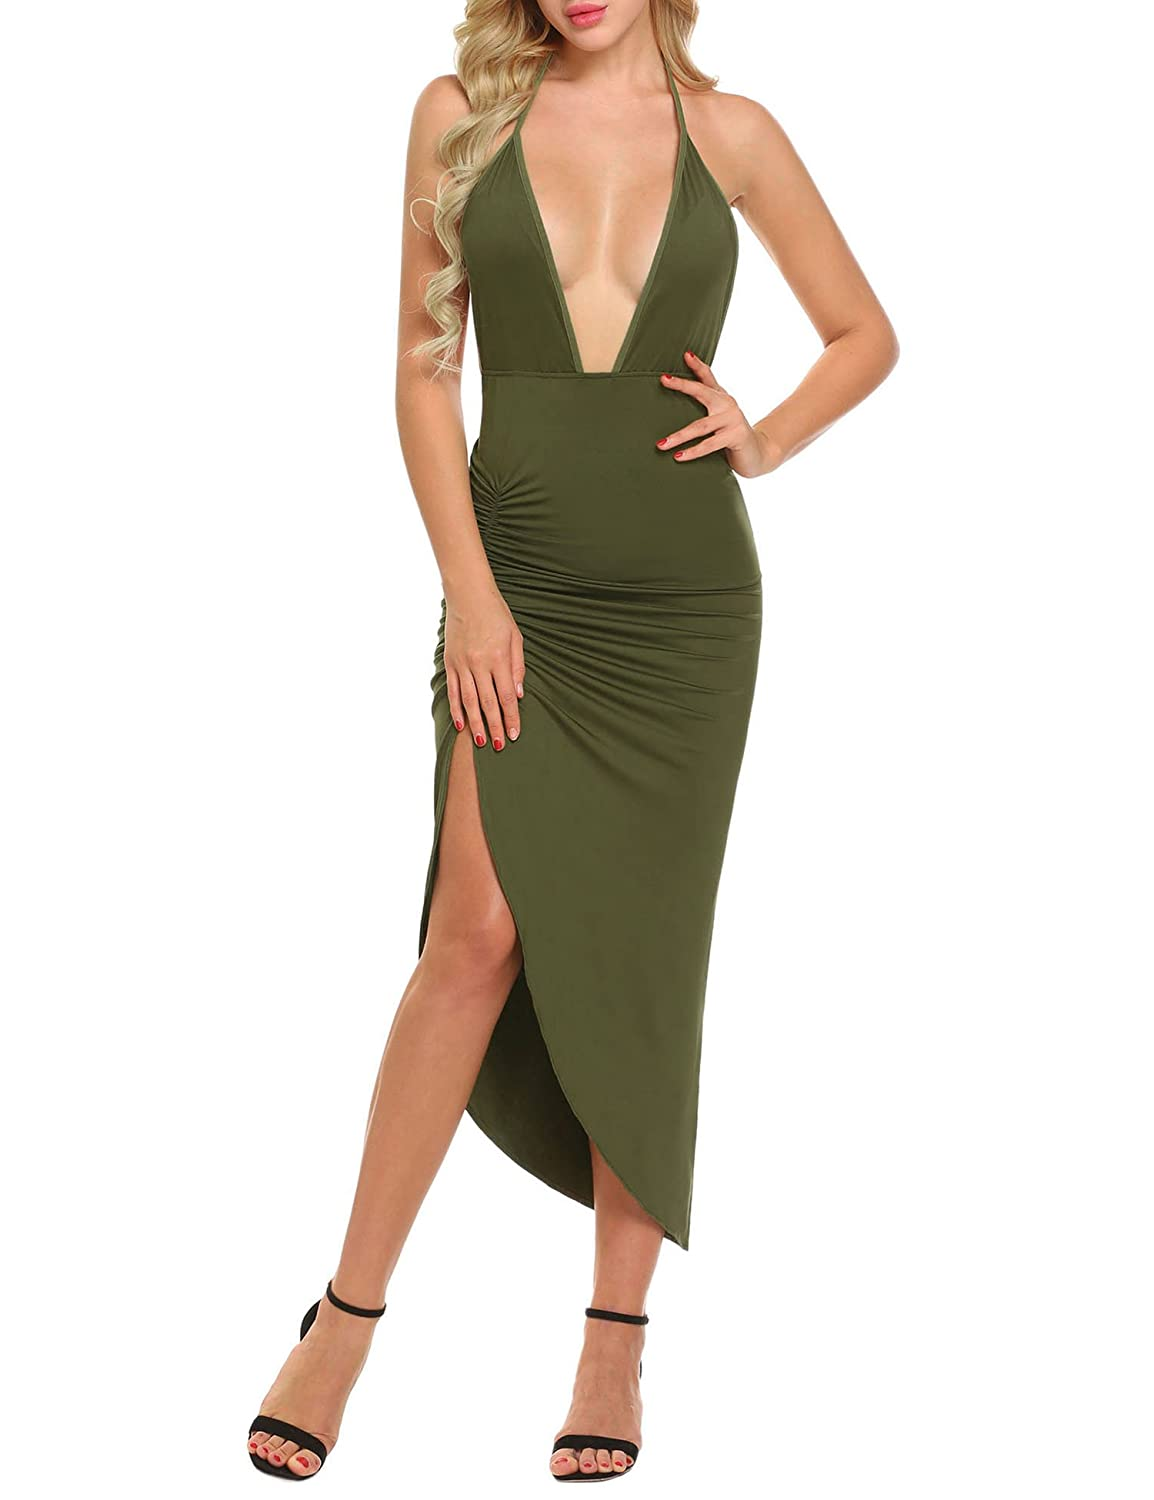 e0d68208f5 Funpor Women s Sexy Deep V Neck Halter Backless Ruched High Split Party  Long Dress at Amazon Women s Clothing store